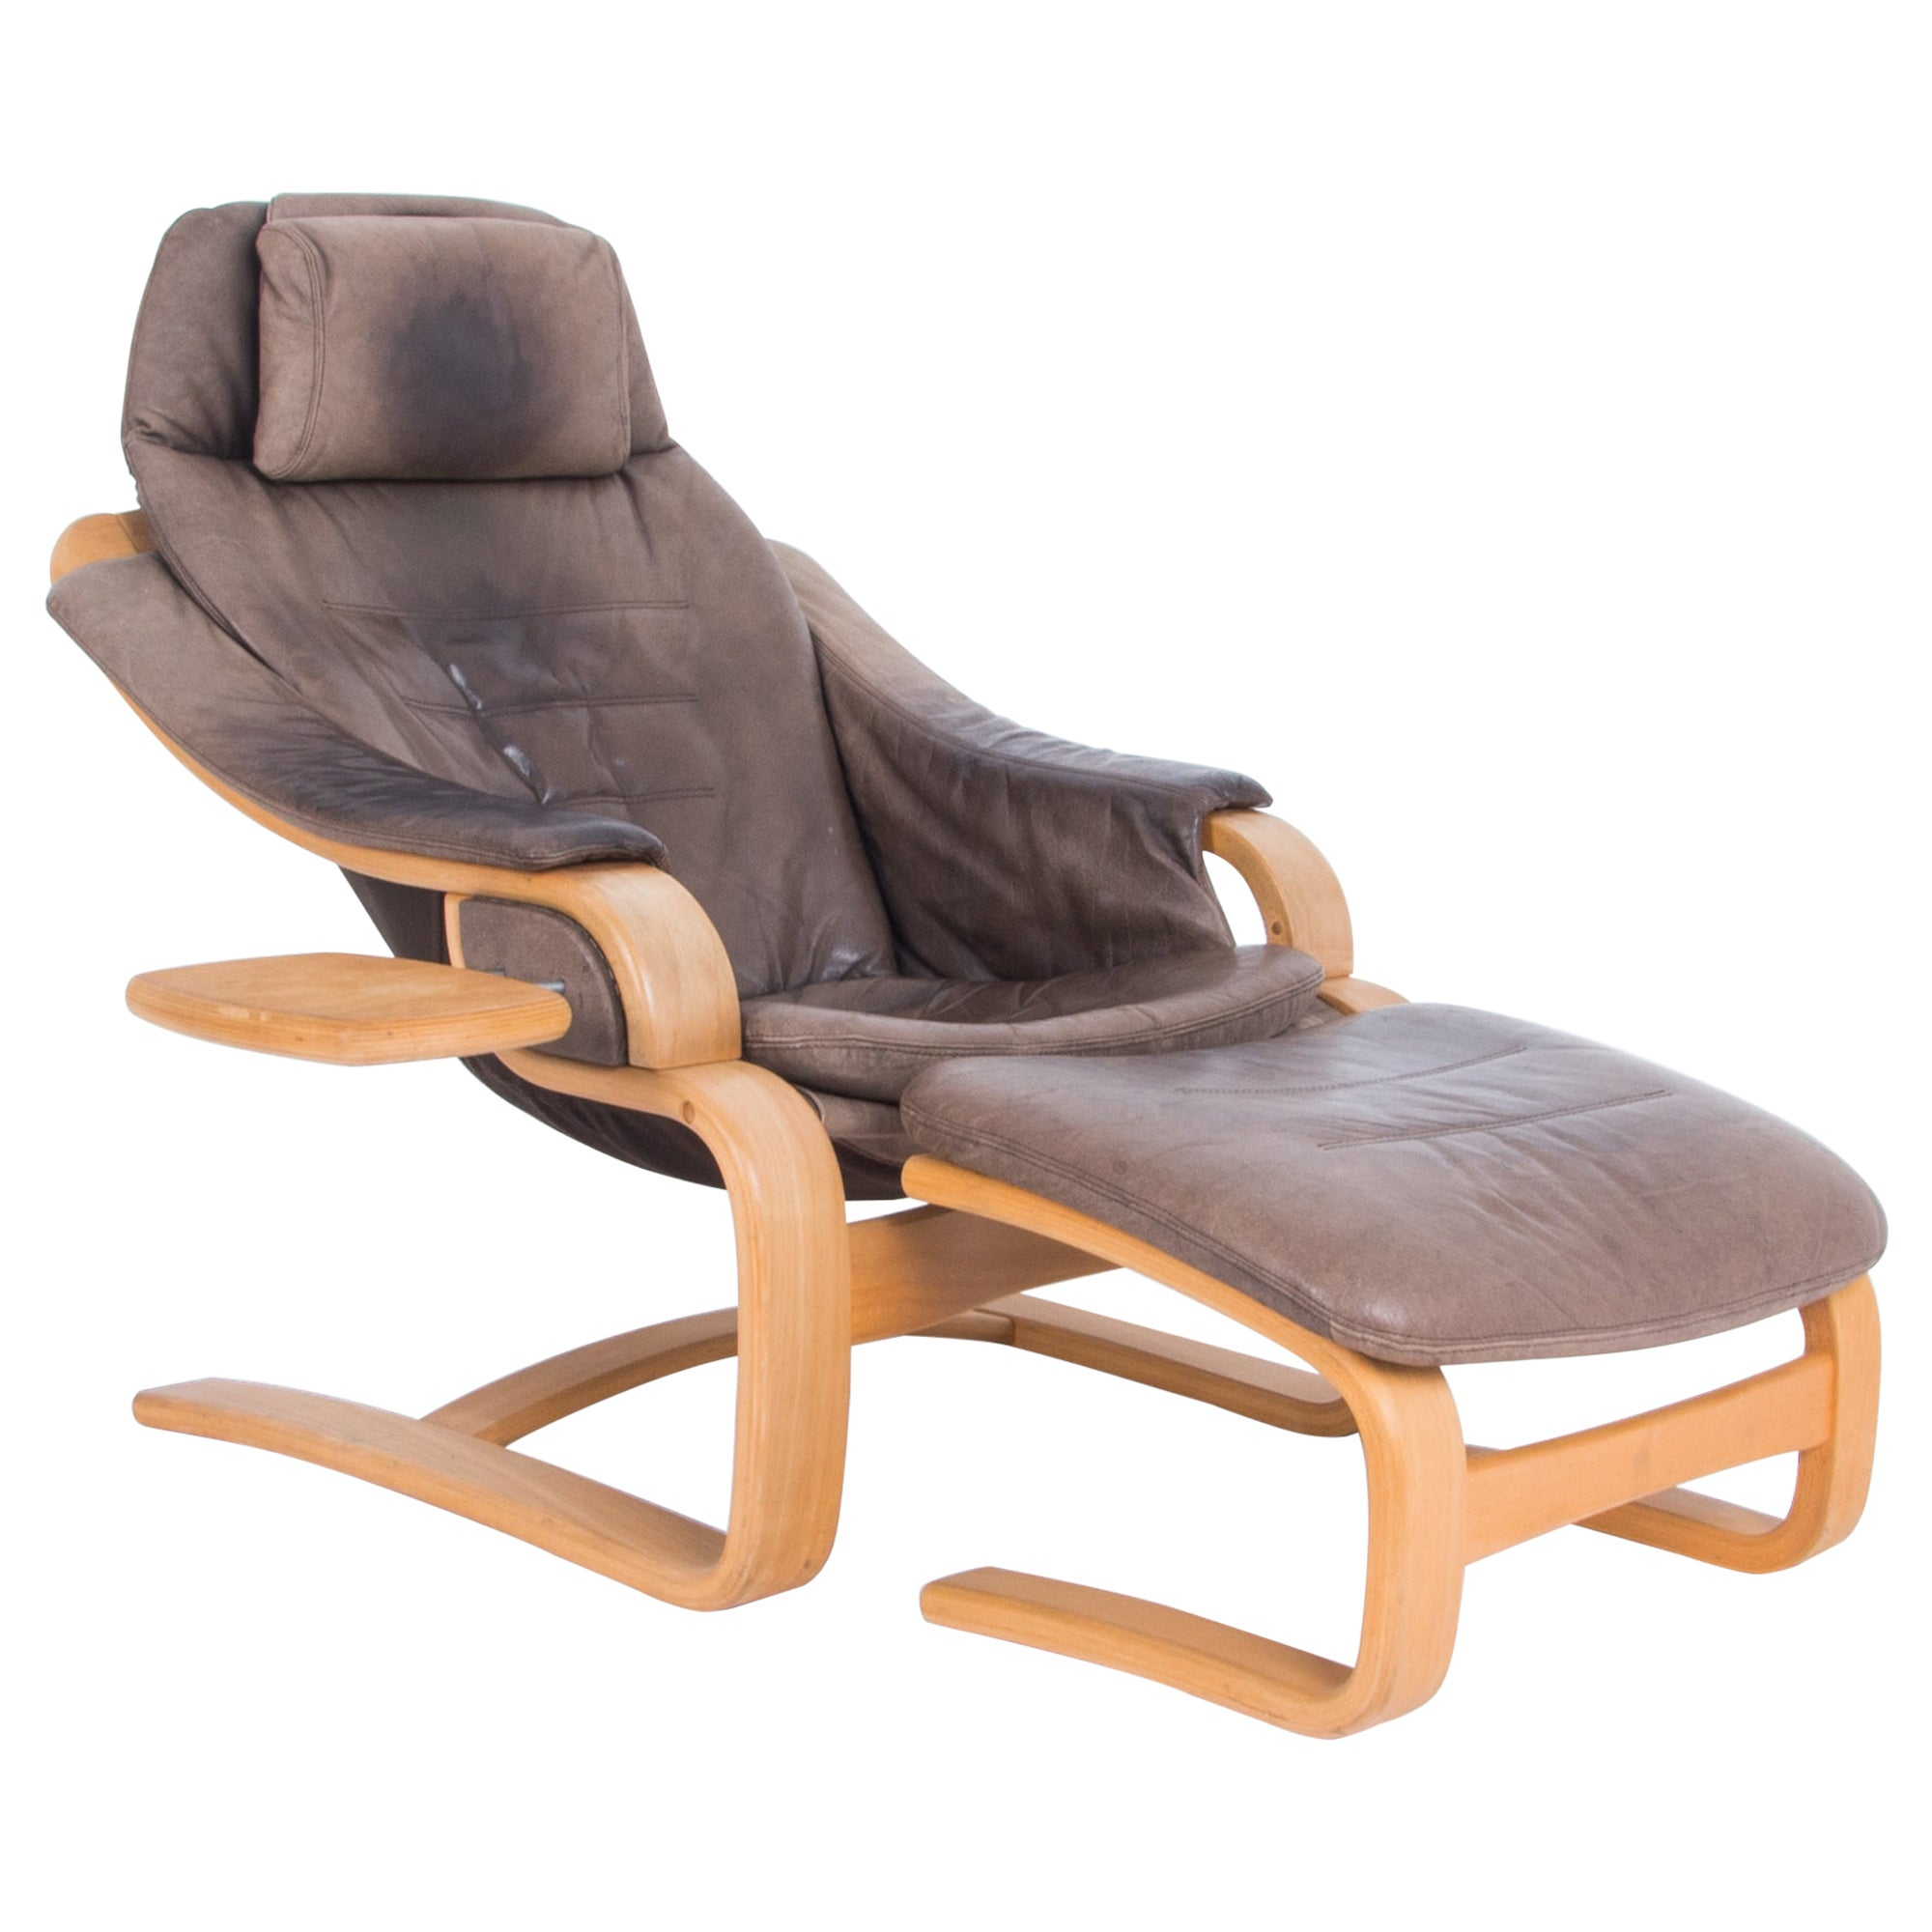 Skipper Mobler Leather Armchair and Footrest